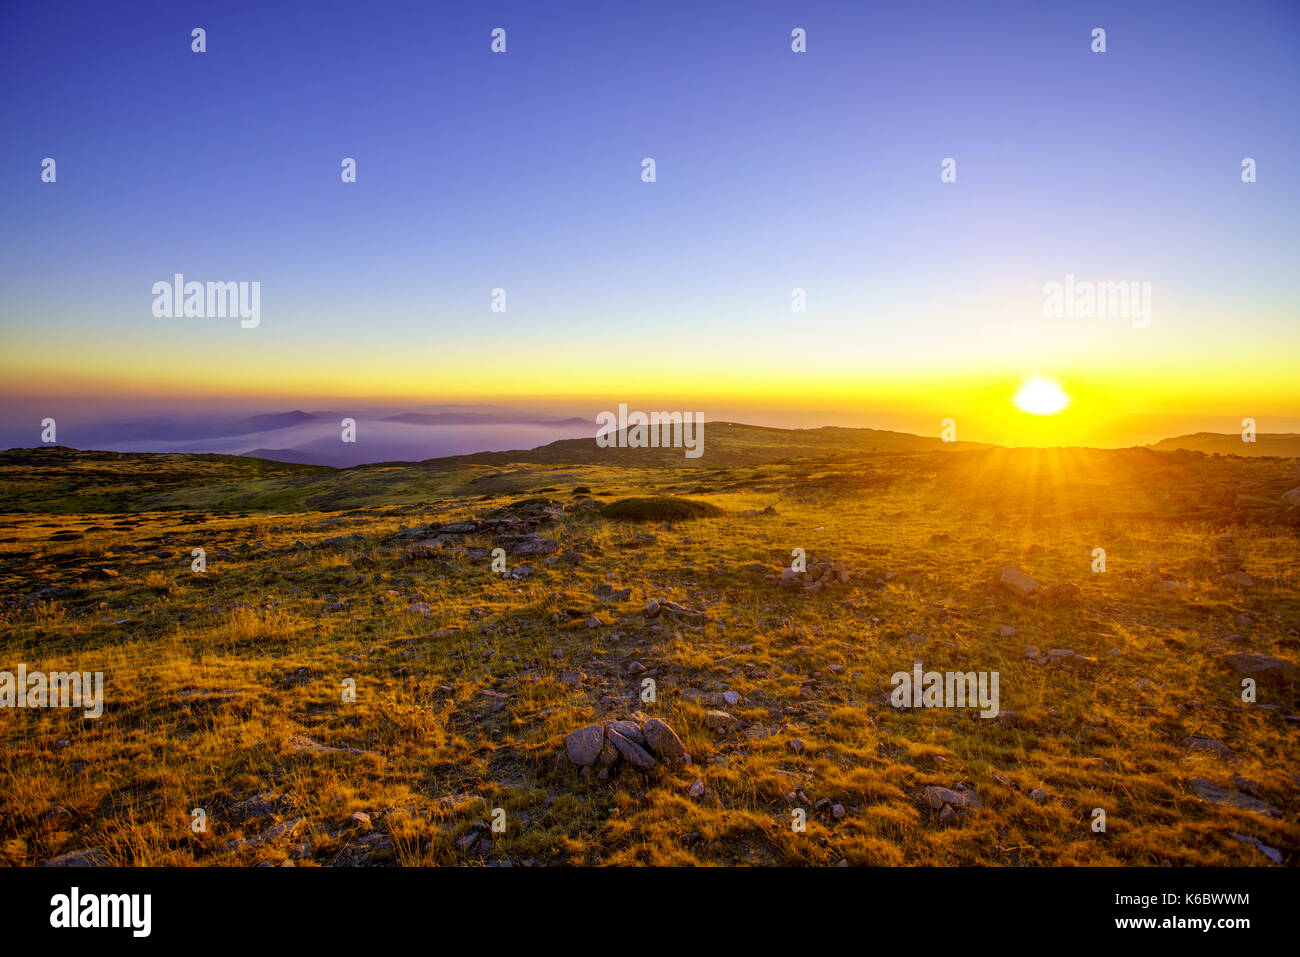 sunset on a summer day in the mountains - Stock Image